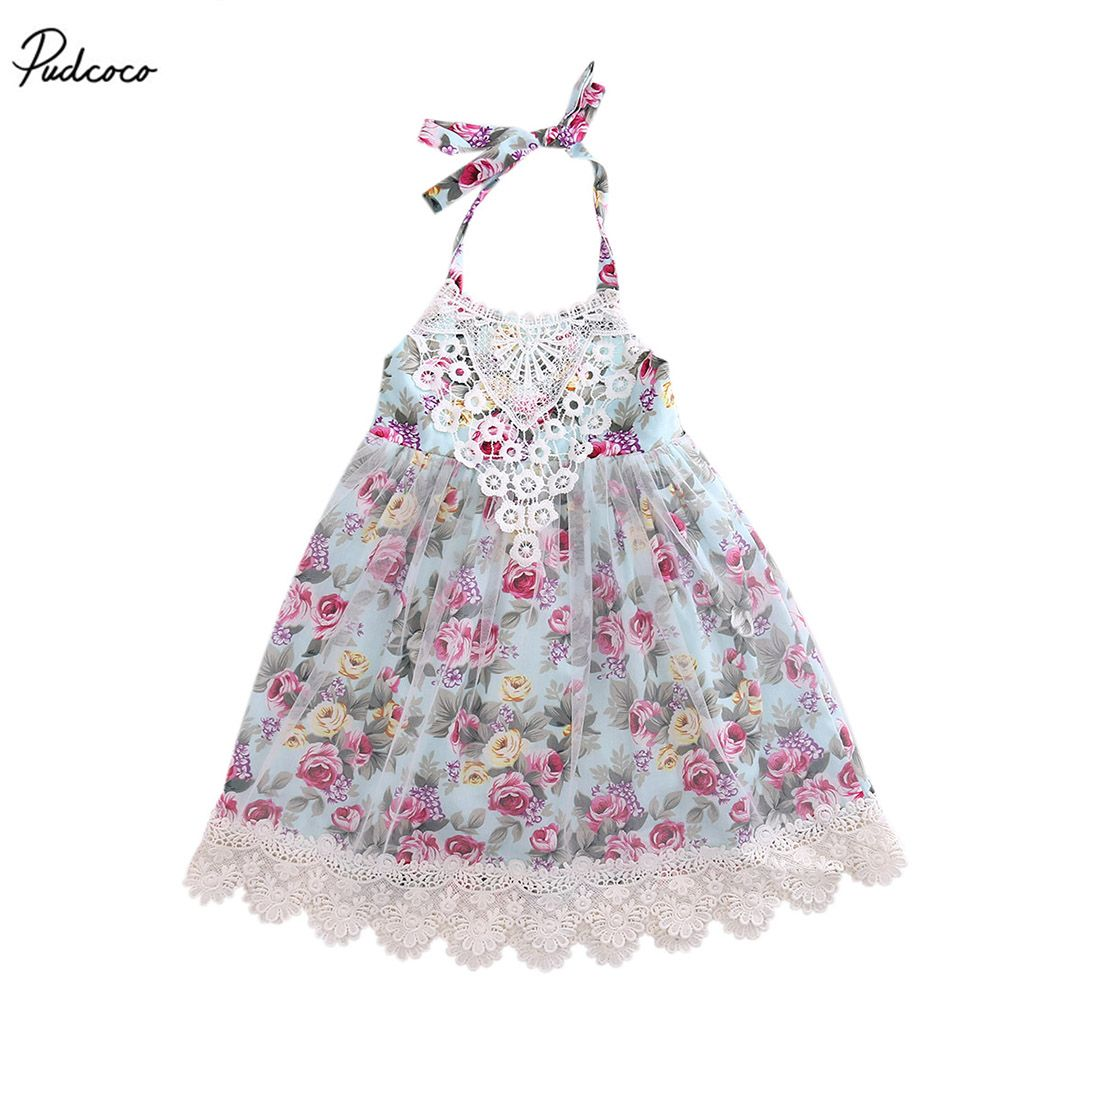 Lace floral dress kids baby girls sleeveless strap tulle party